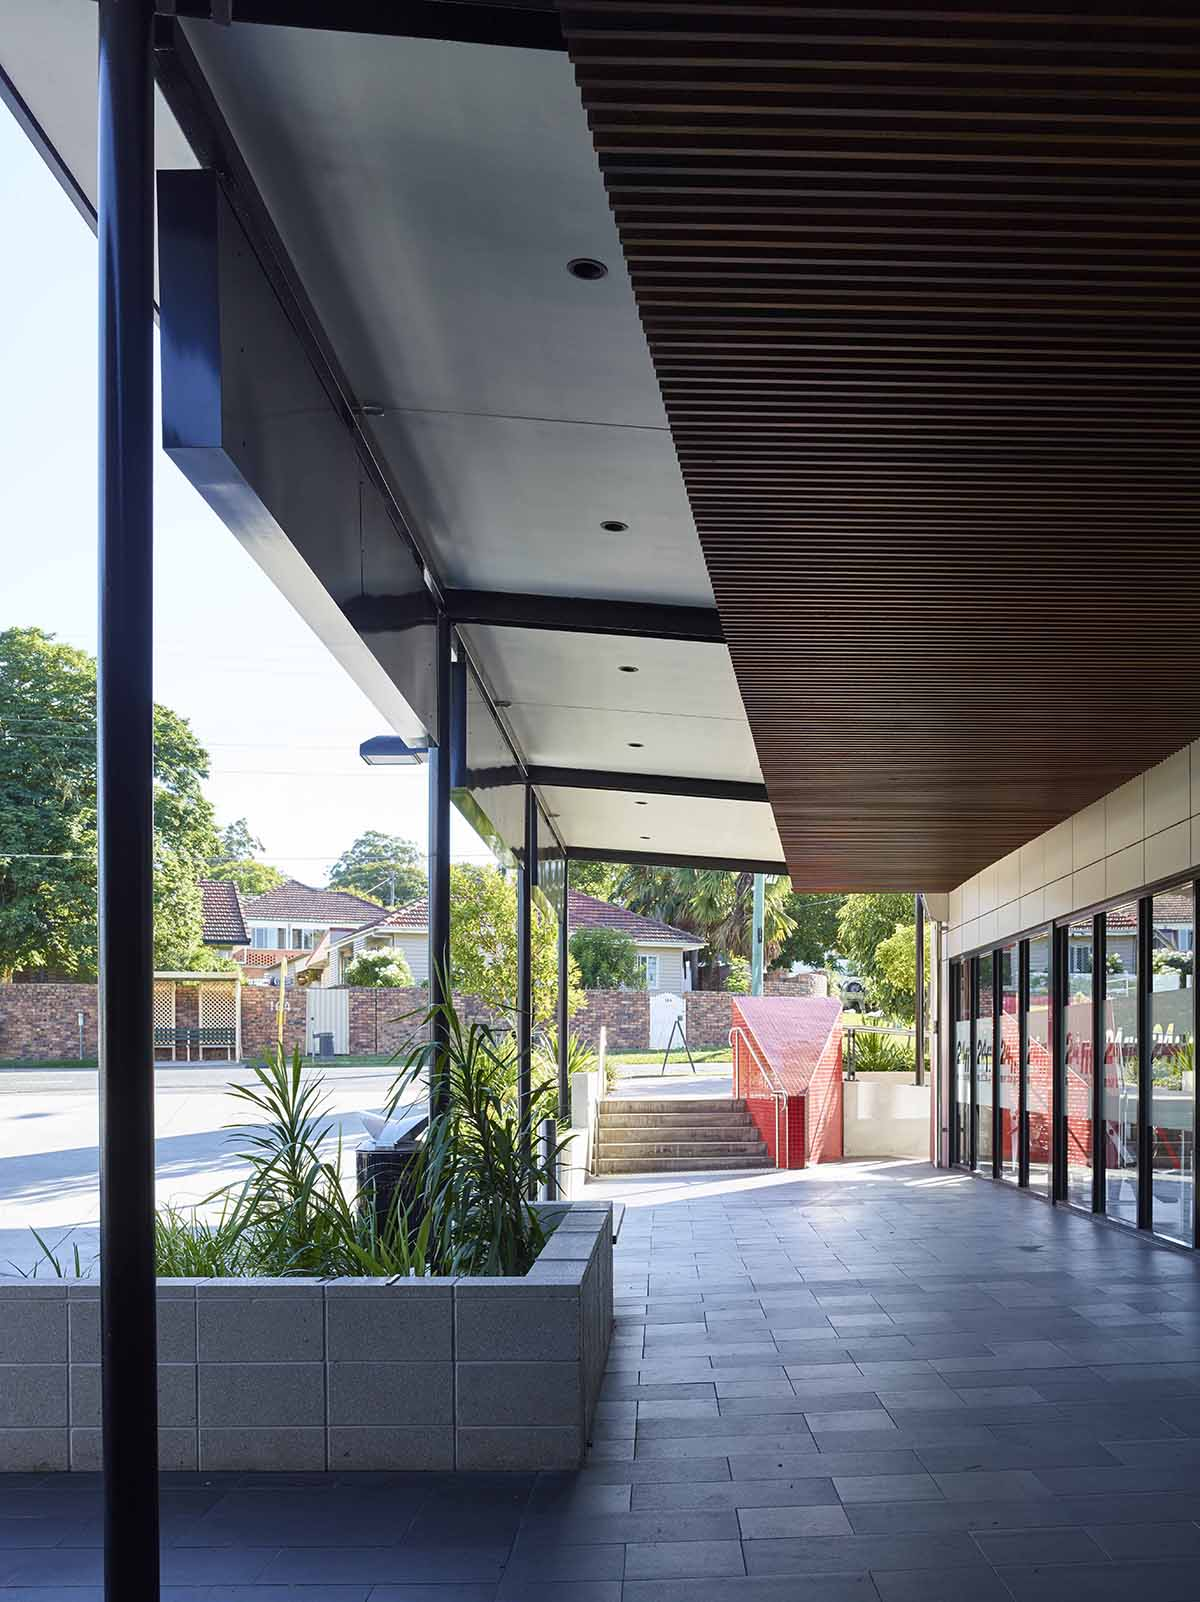 Guymer-bailey-architects-Hamilton-Road-Commercial-05.jpg